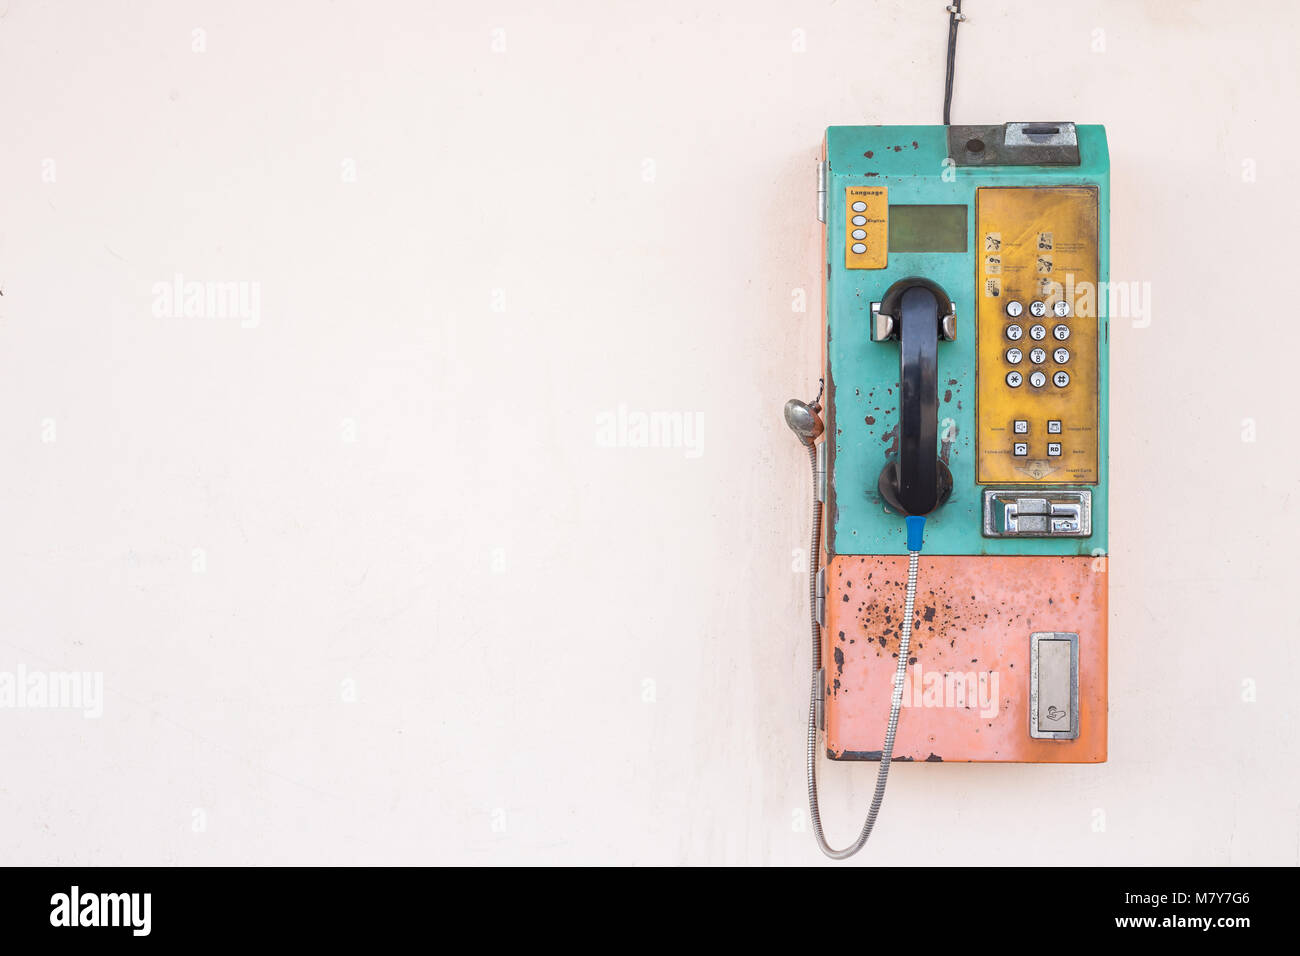 Old public phone using coin or card setting on the wall. With empty space for text - Stock Image